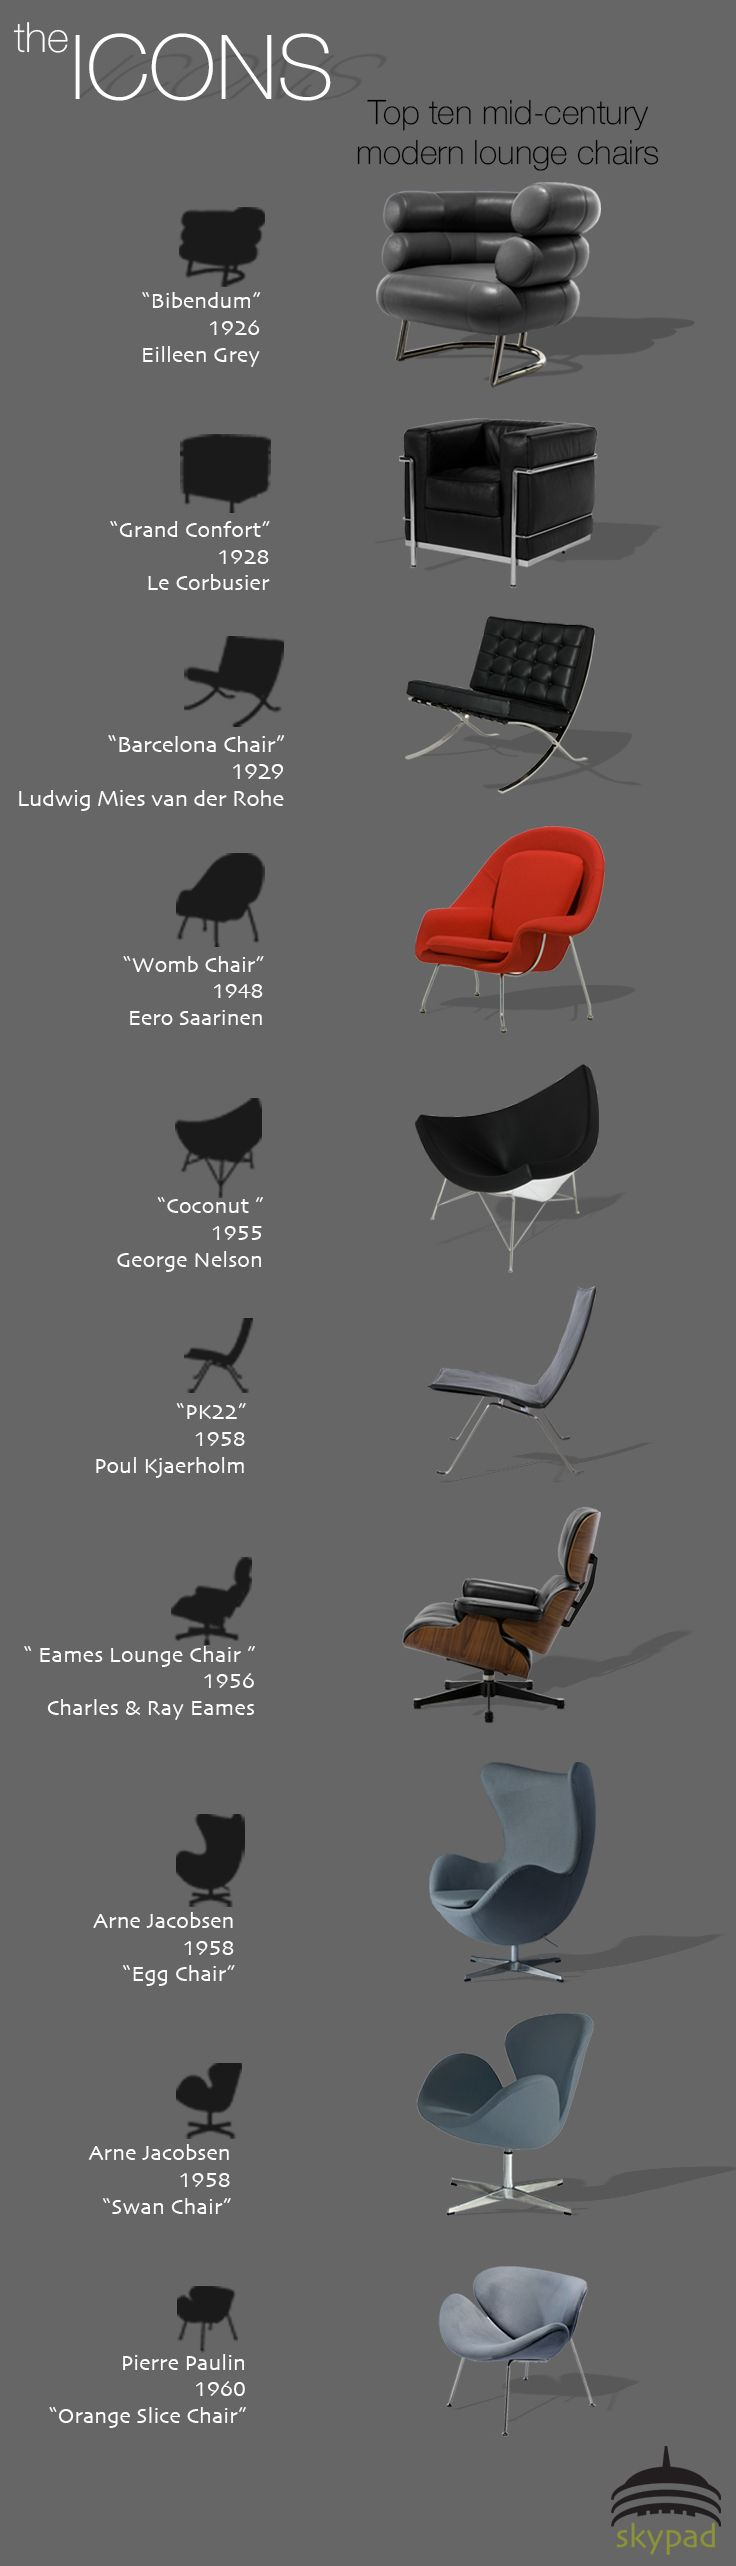 Best 25+ Furniture Chairs Ideas On Pinterest | Mid Century Furniture, Chair  And Kitchen Furniture Inspiration